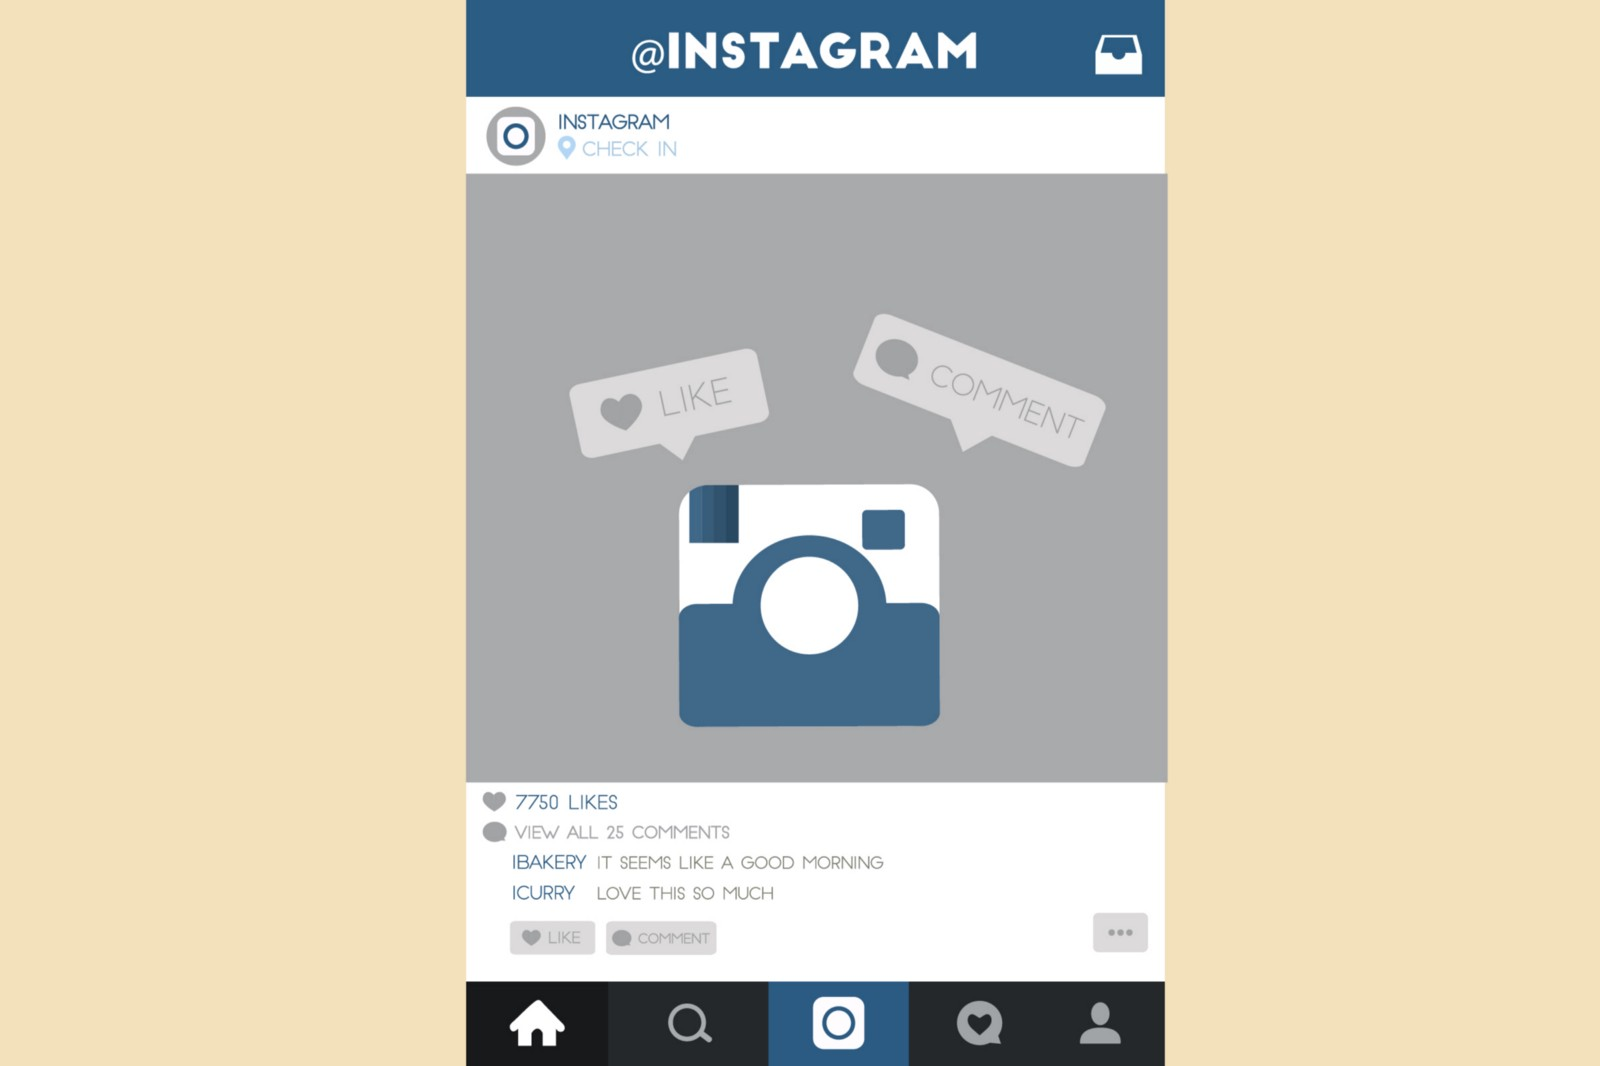 Bots to gain followers fast on Instagram